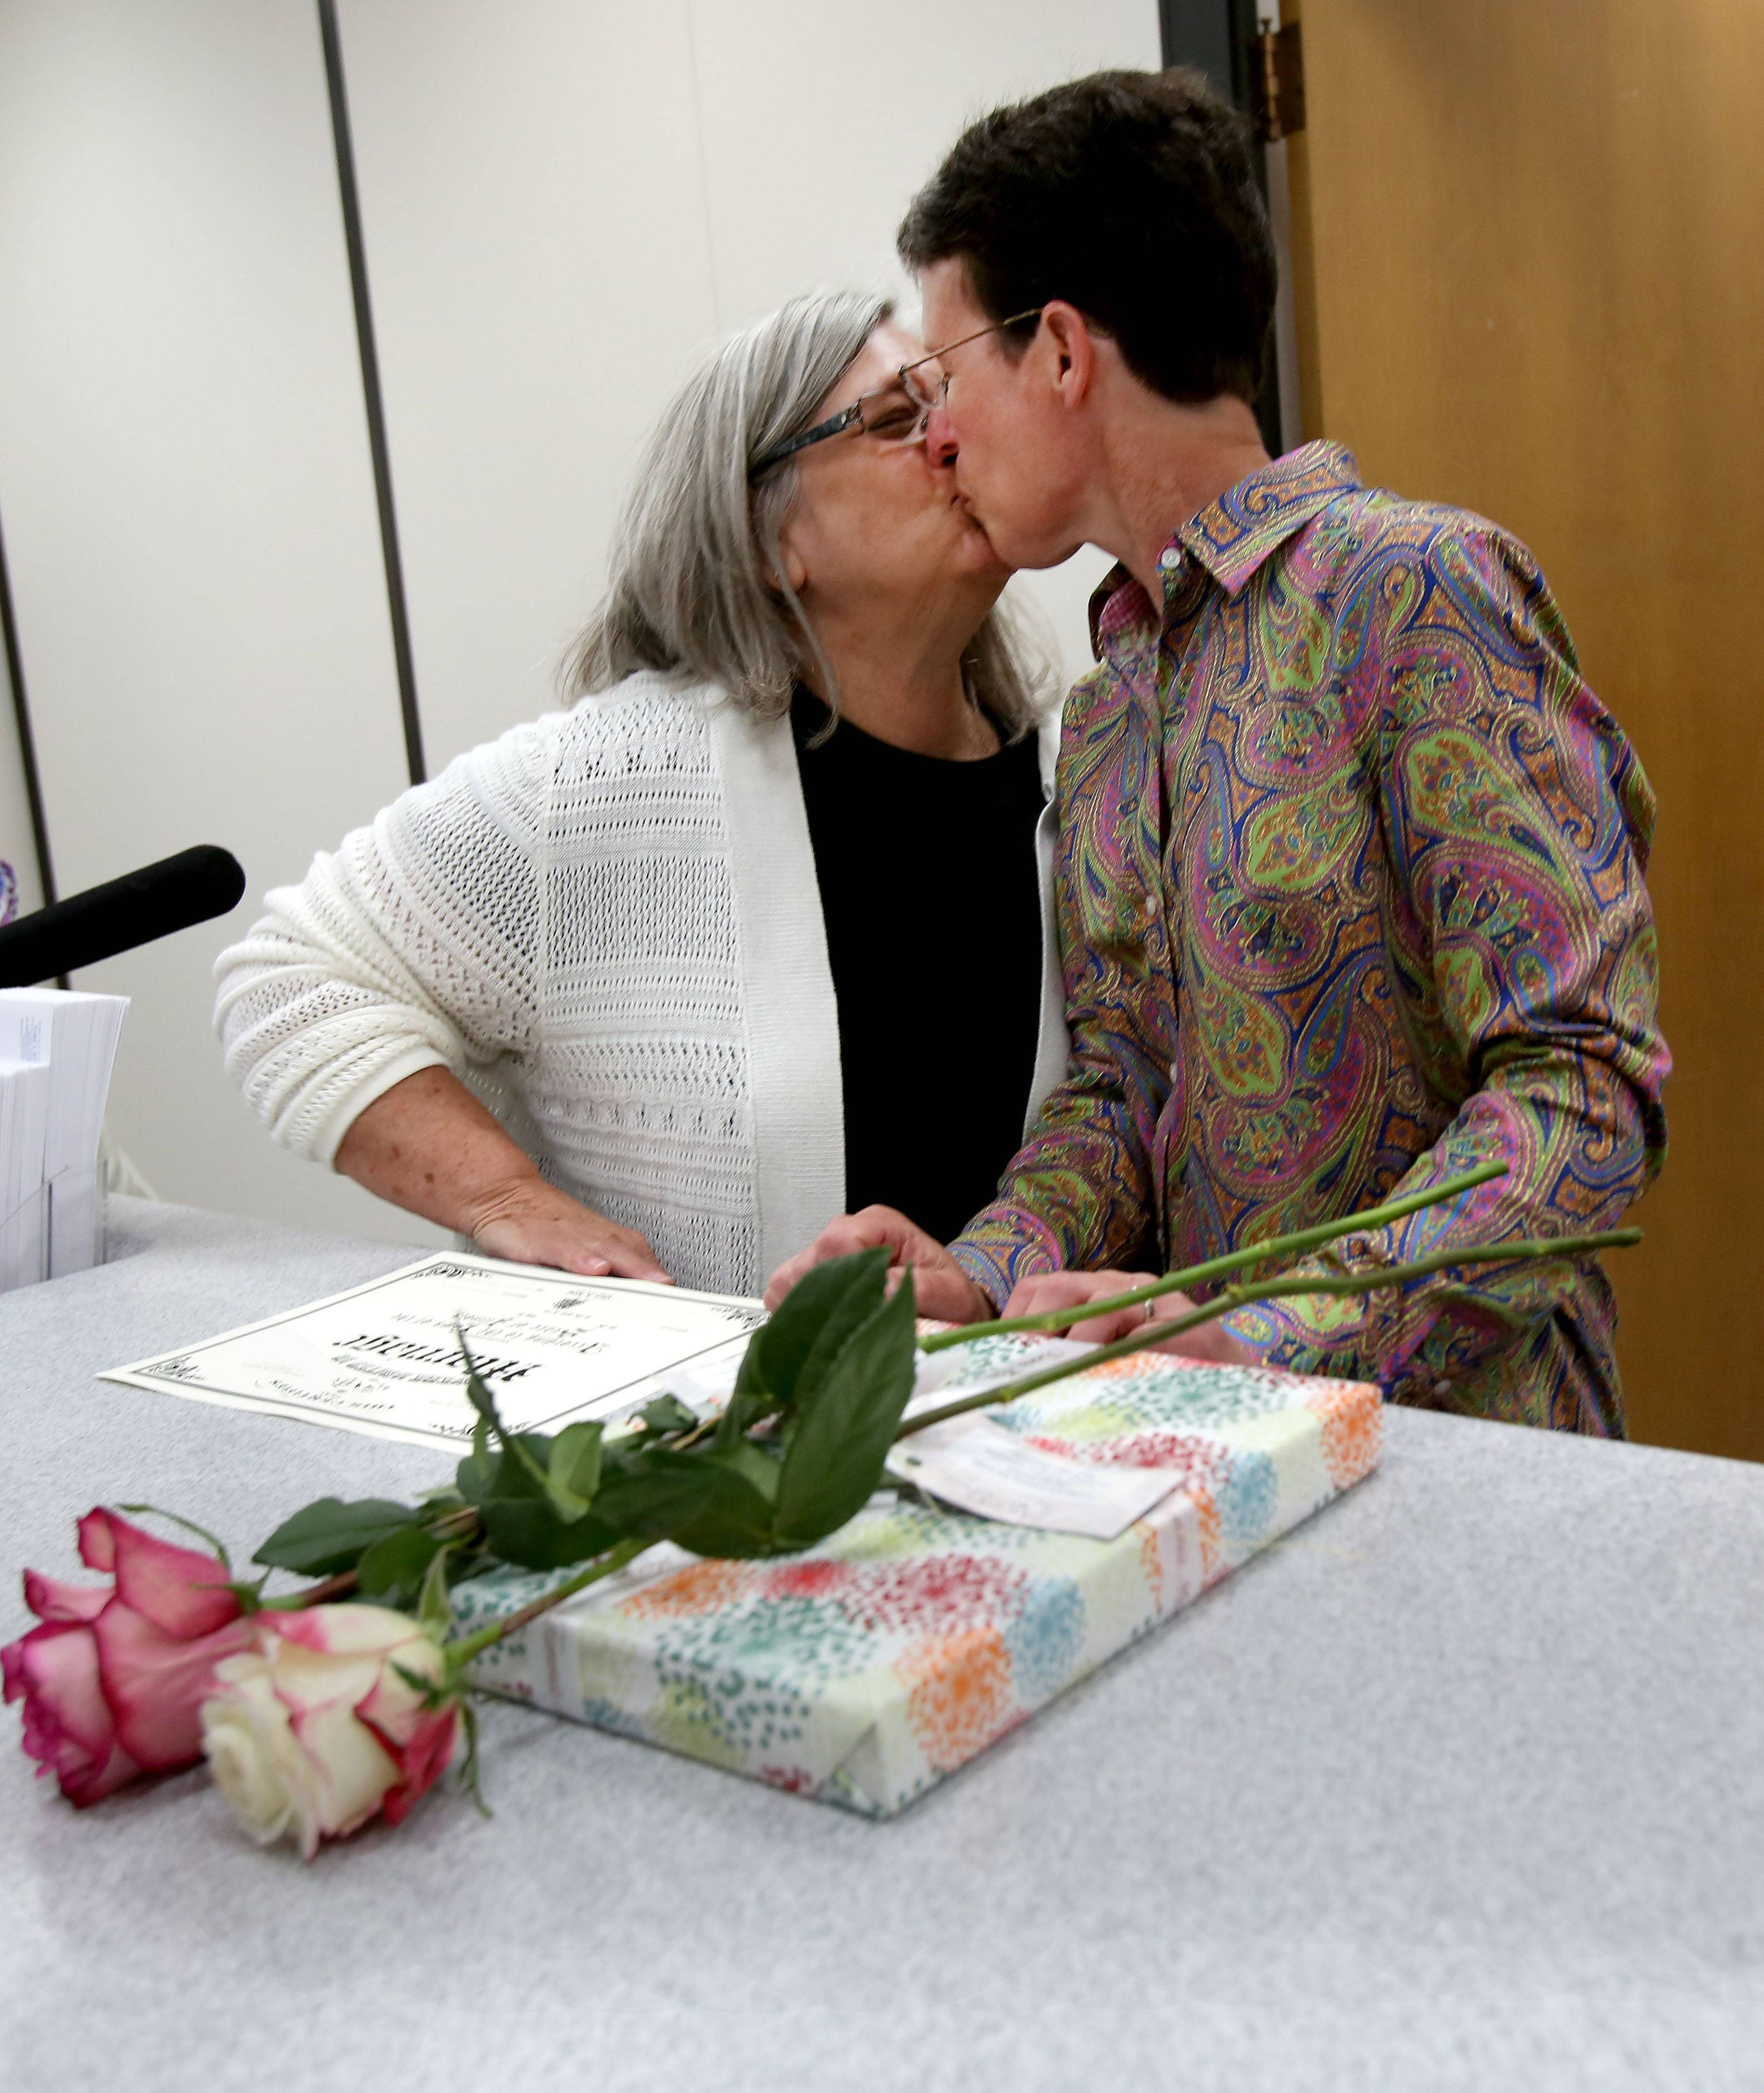 Barb McMillan, left, gives a kiss to her wife Roseann Szalkowski after they were able to convert their civil union to a marriage license at the DuPage County Clerk's office in Wheaton on Monday.  The couple from Roselle are now officially married since 2011.